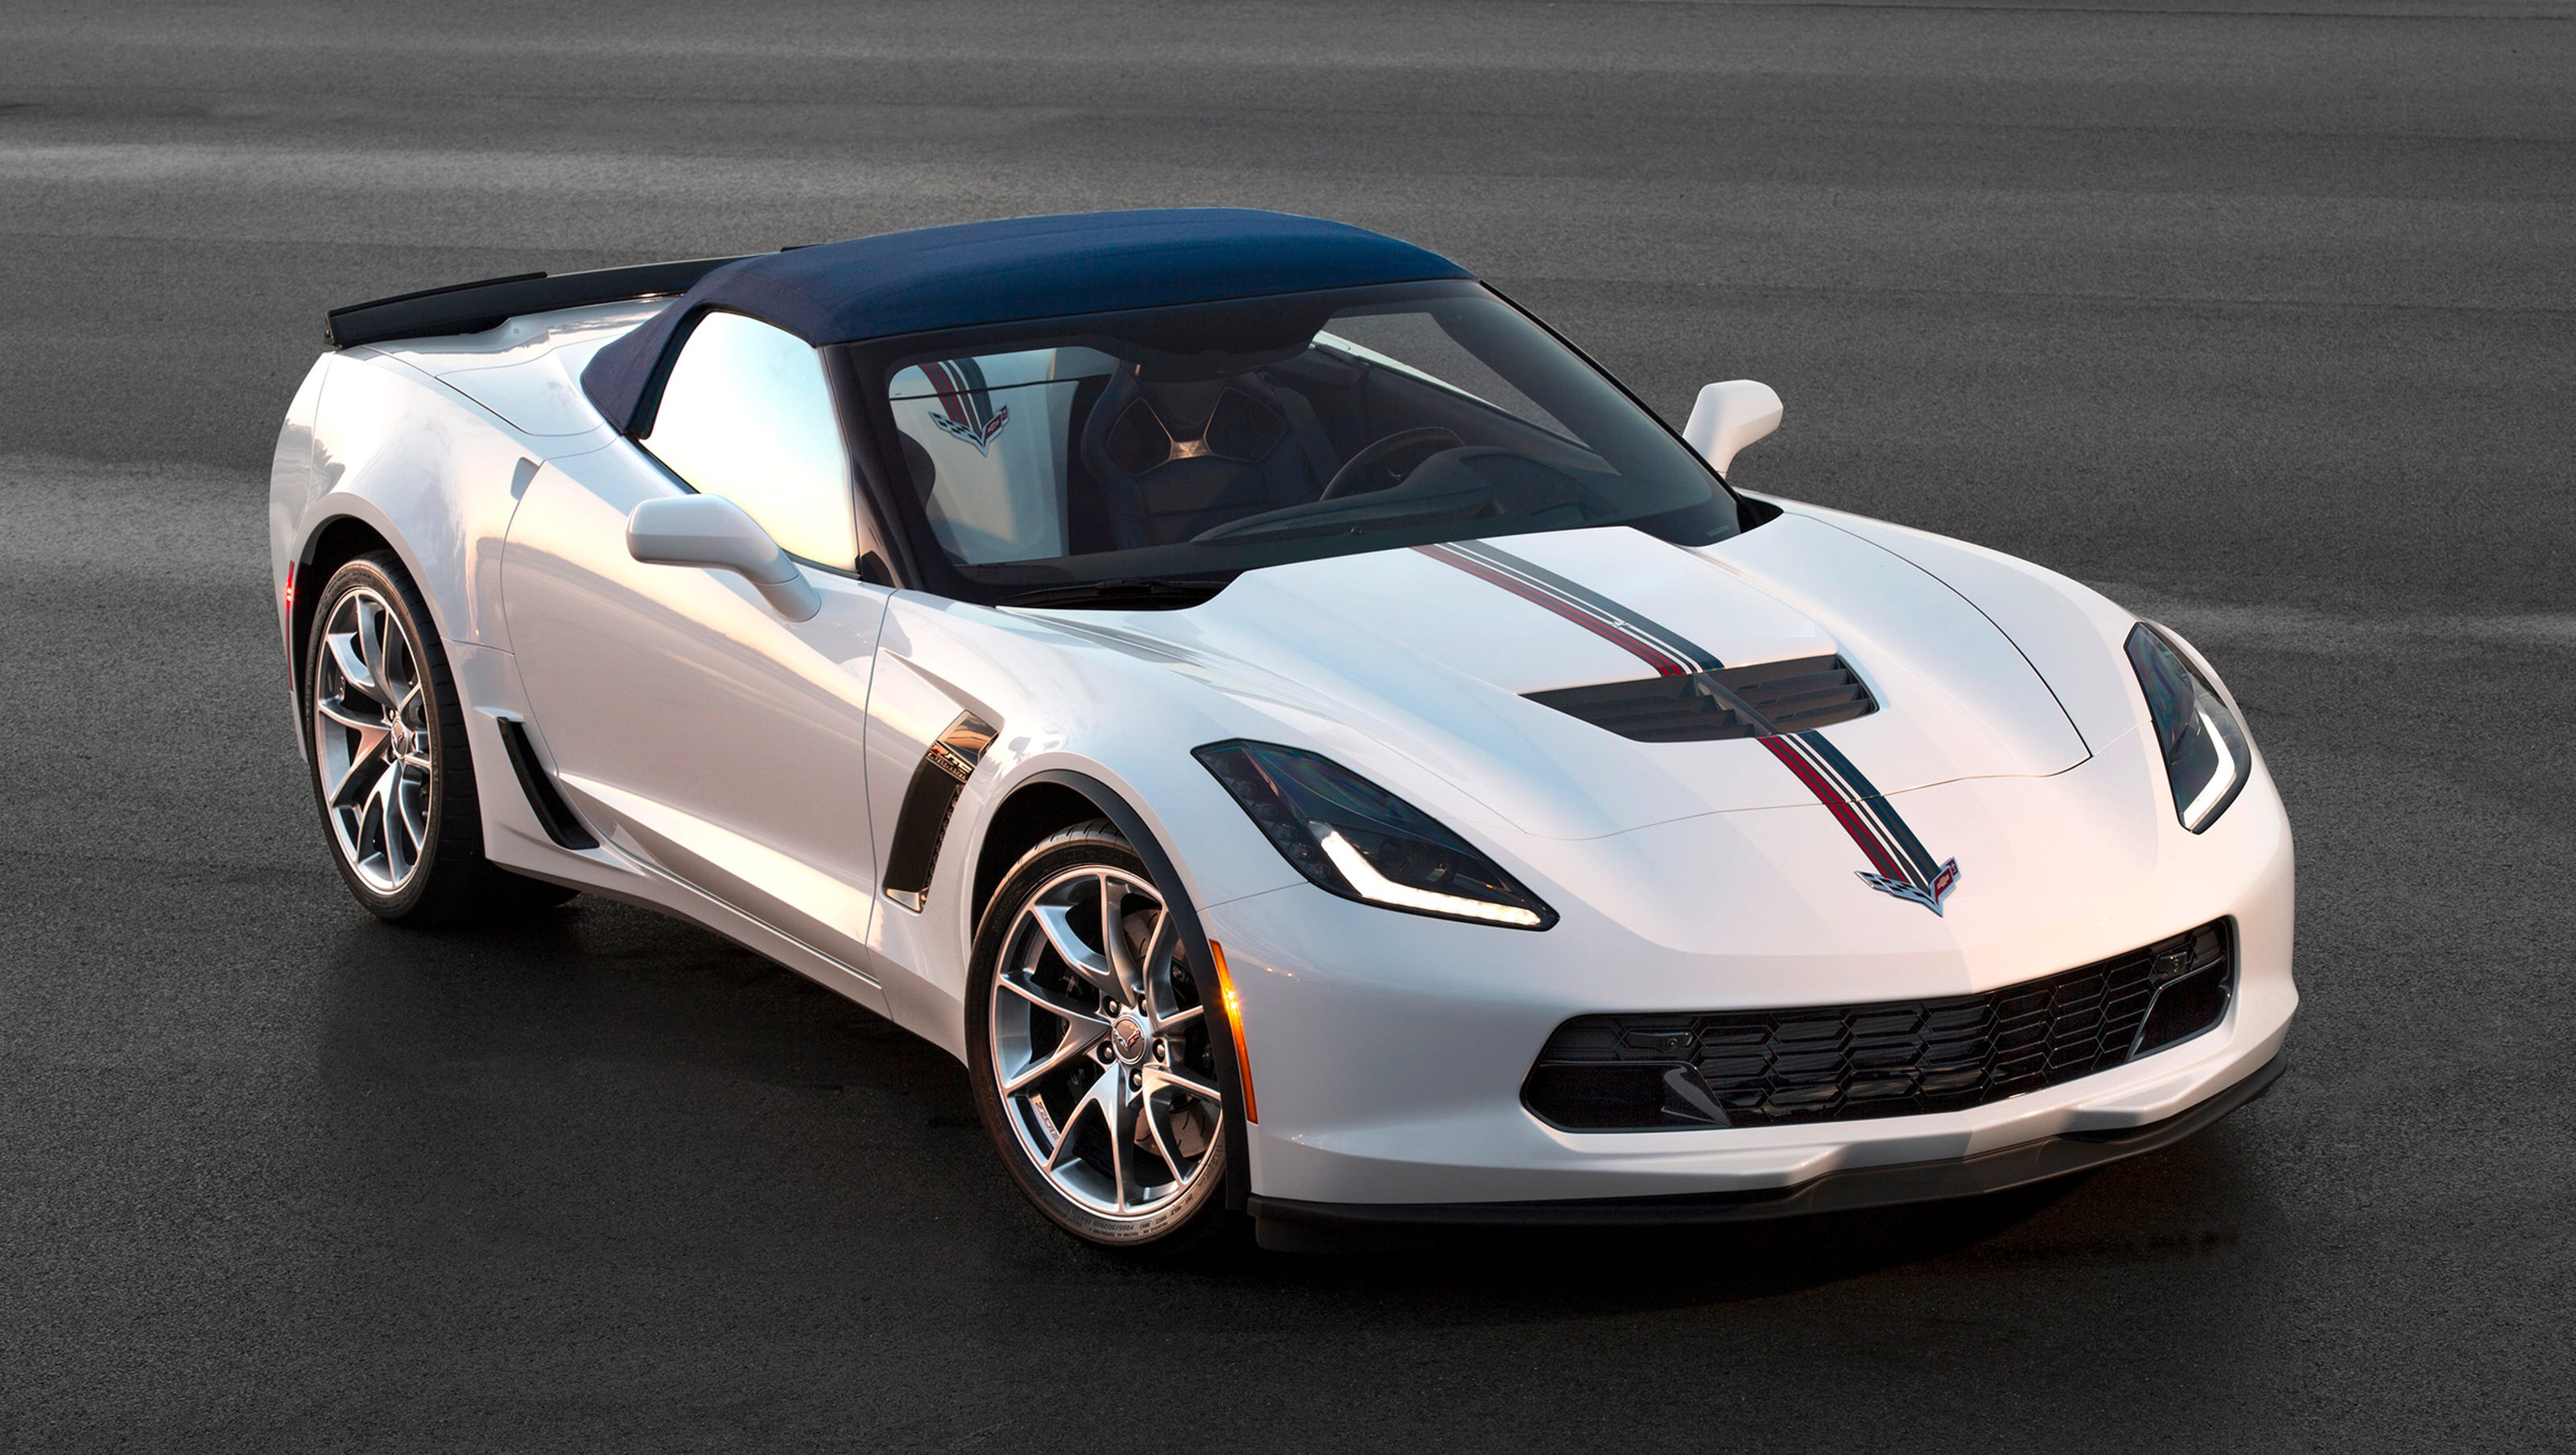 Corvette Zo6 Delivers Supercar Performance And Looks At Bargain Price